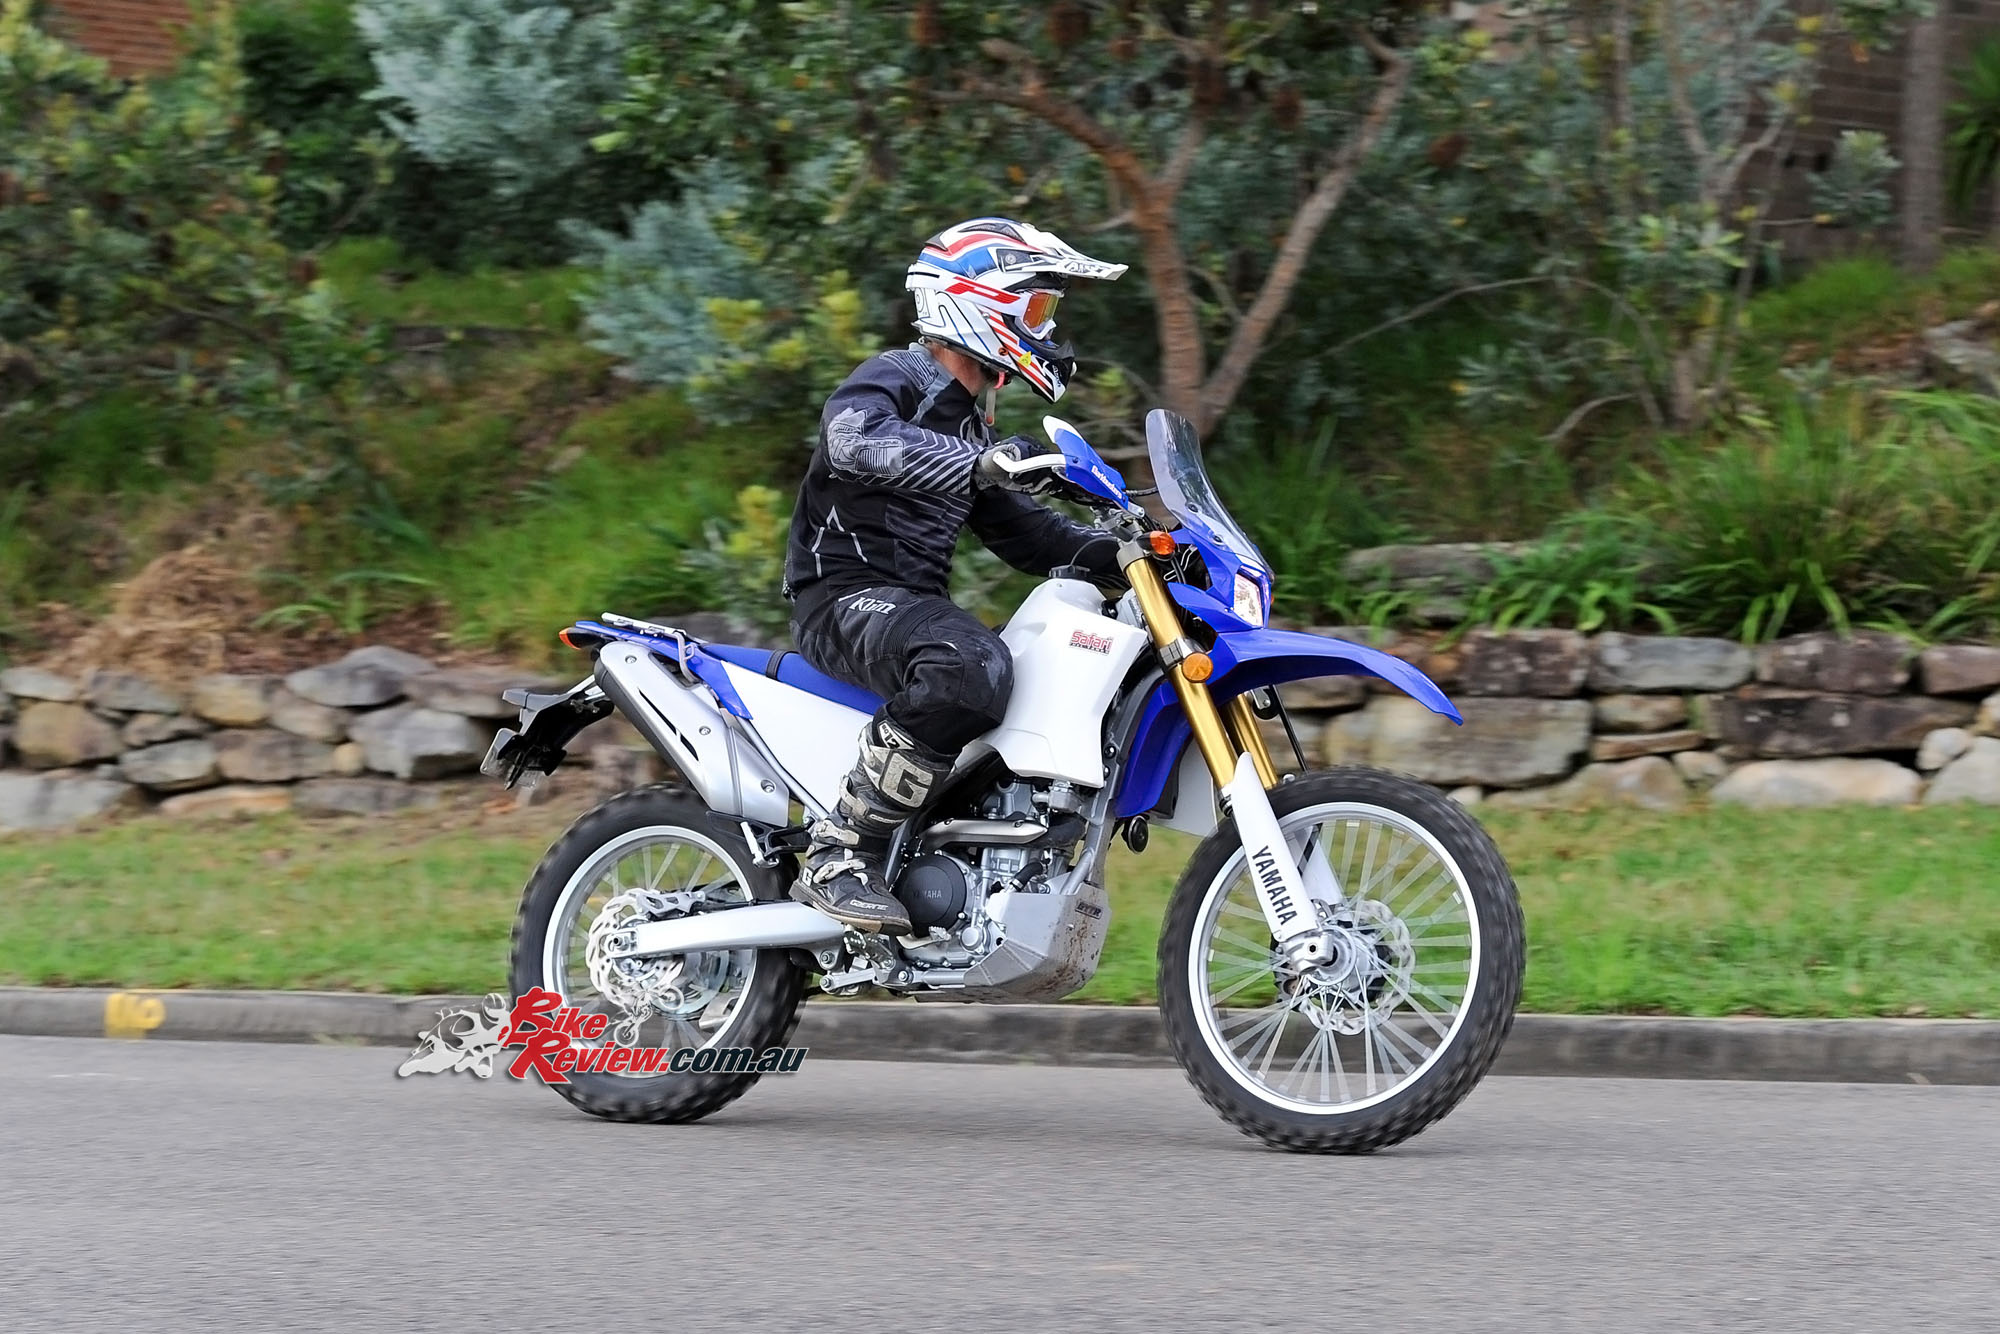 Yamaha Wrr Review